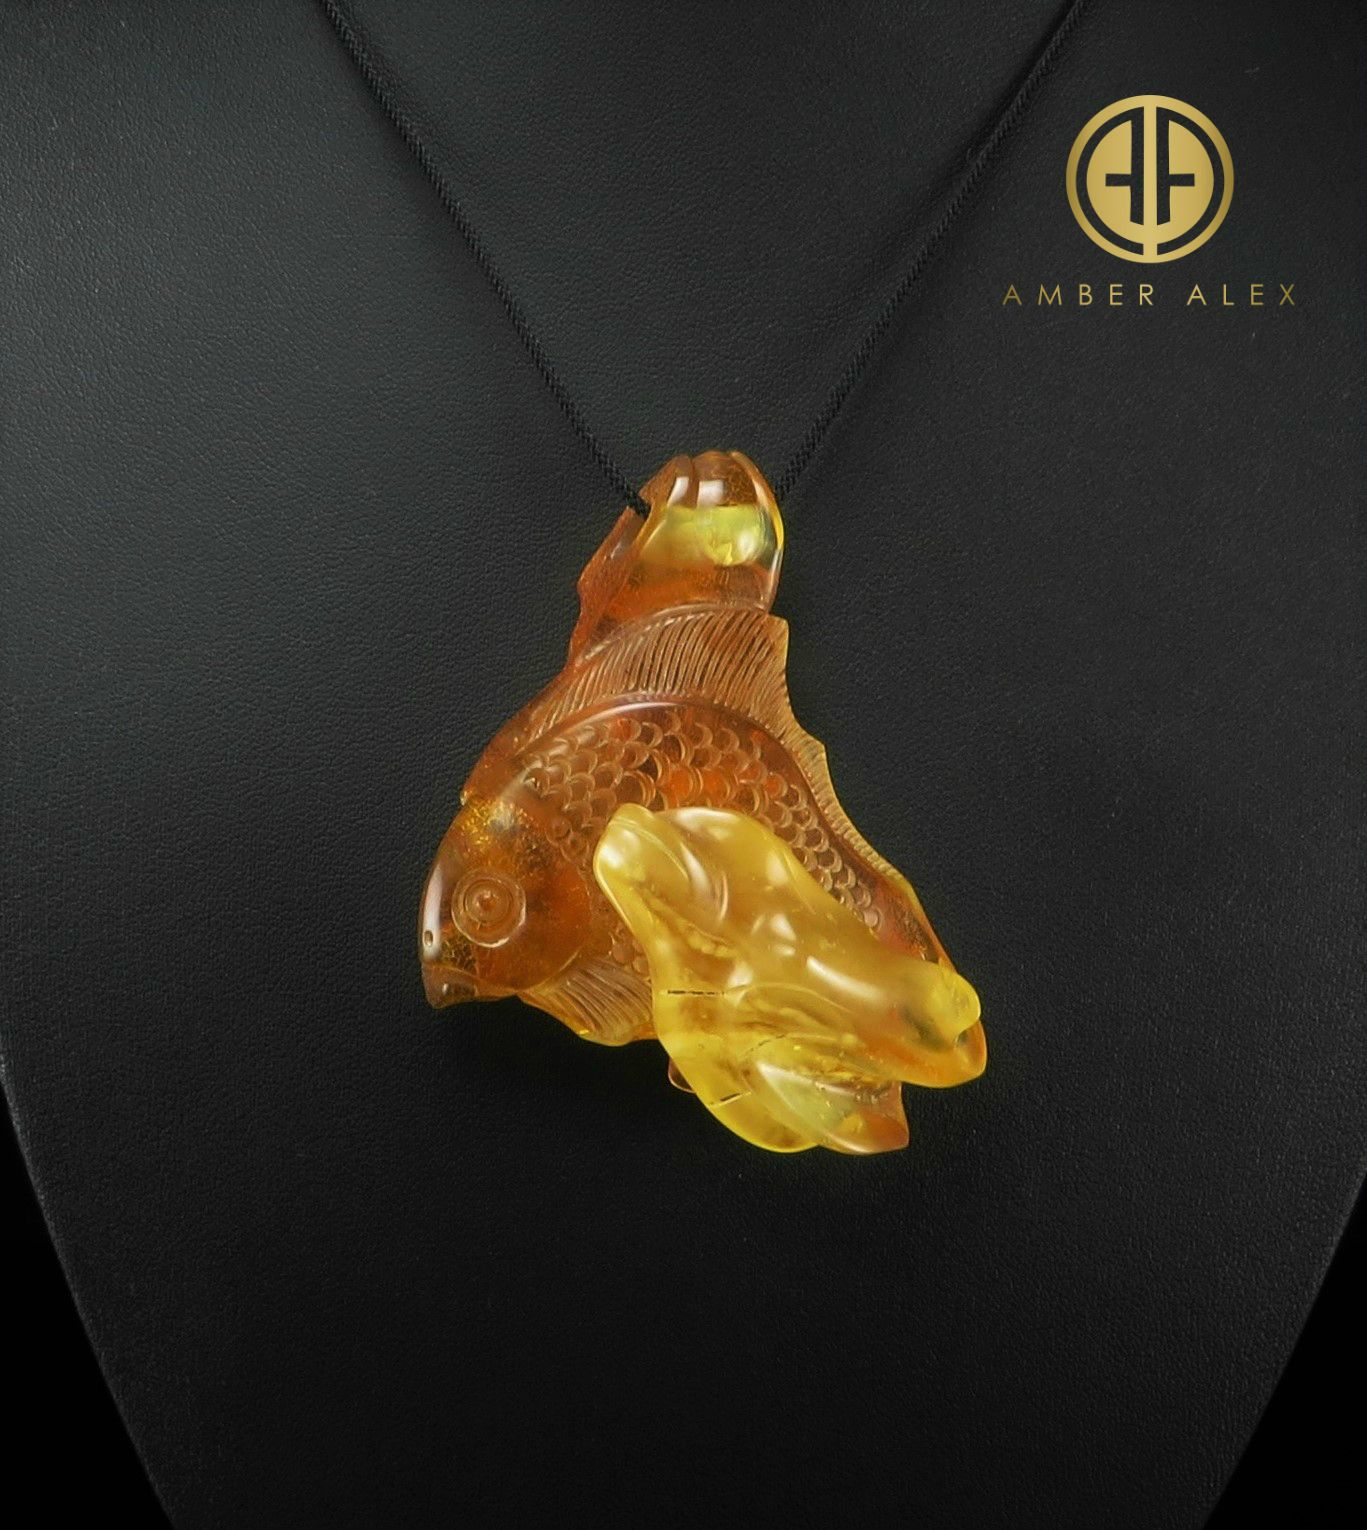 Baltic amber carved pendant gram balticamber amberpendant